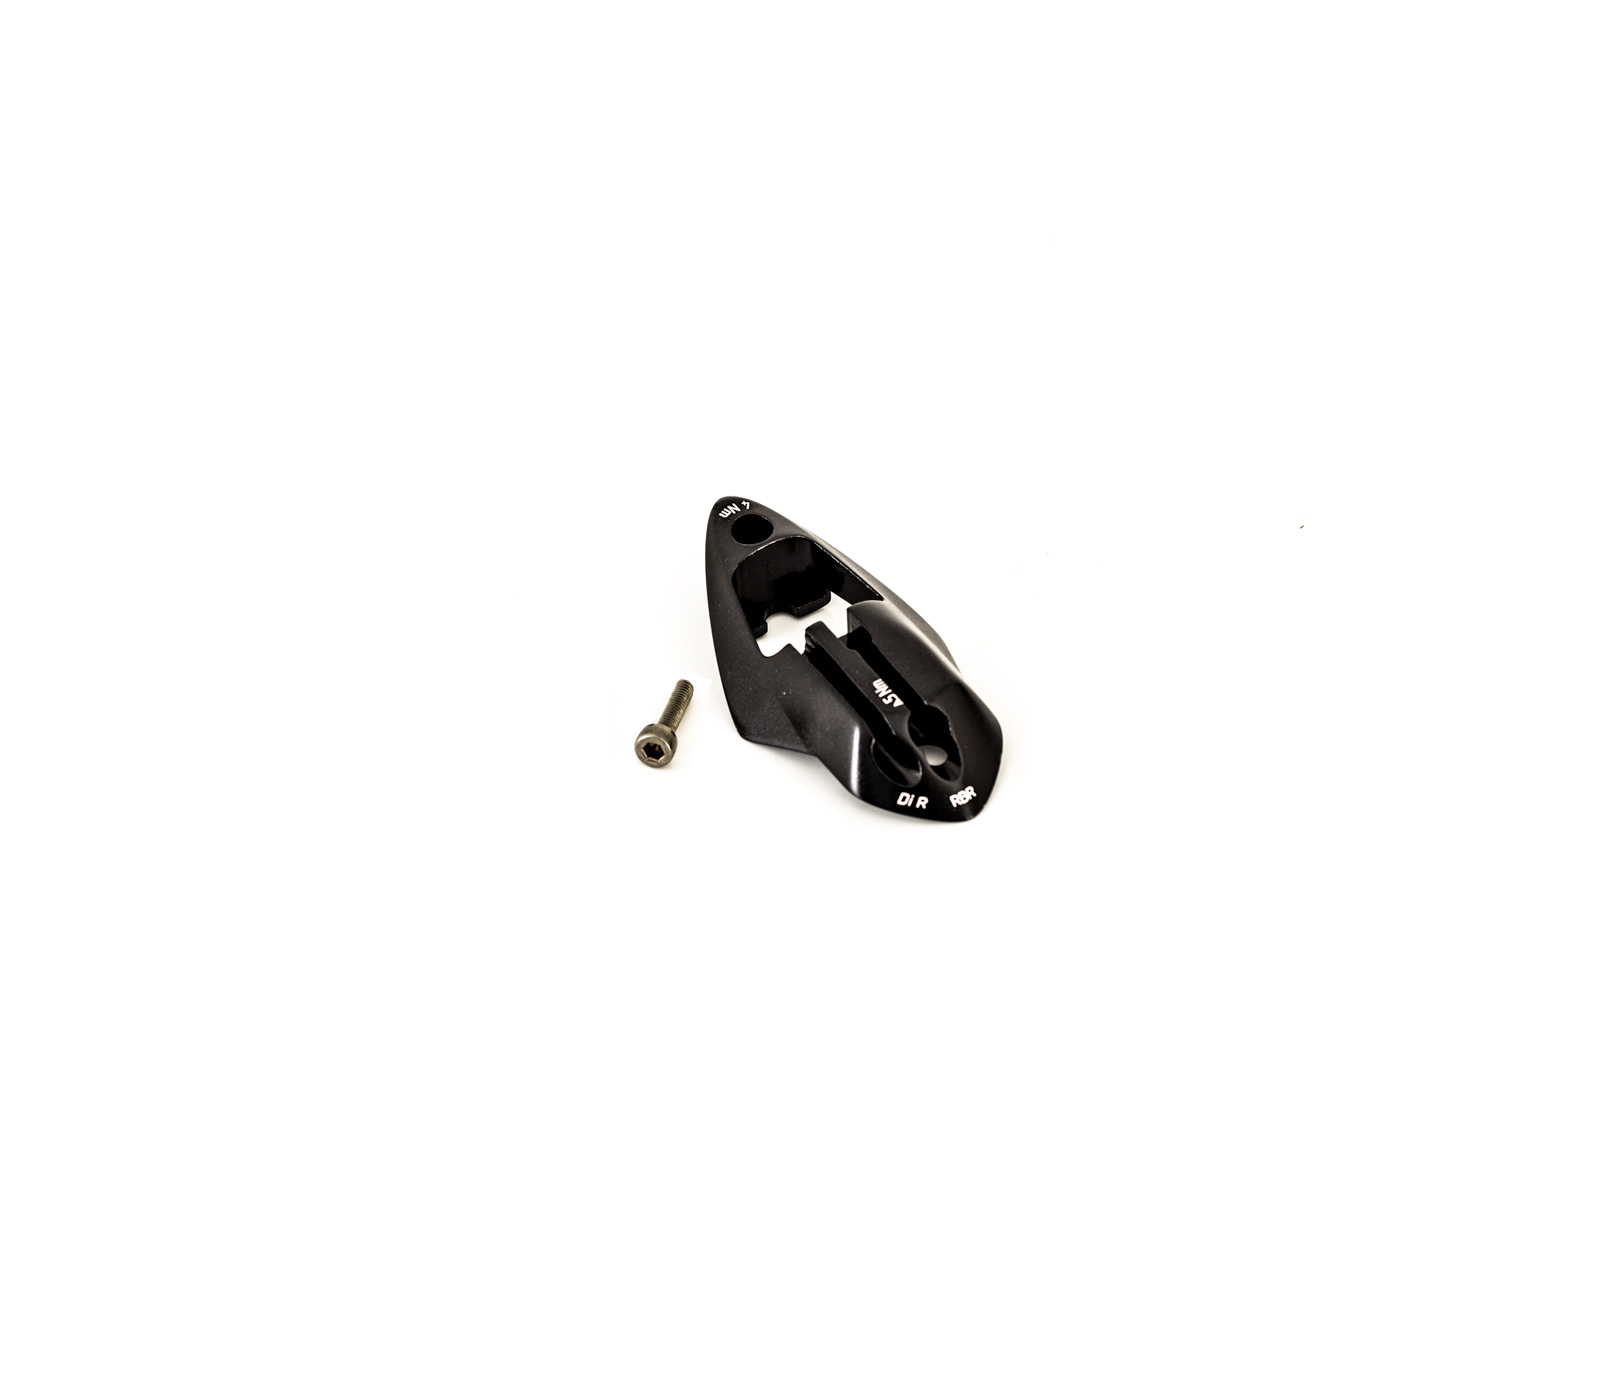 ORDU OMR Di2 TOP TUBE CABLE STOP